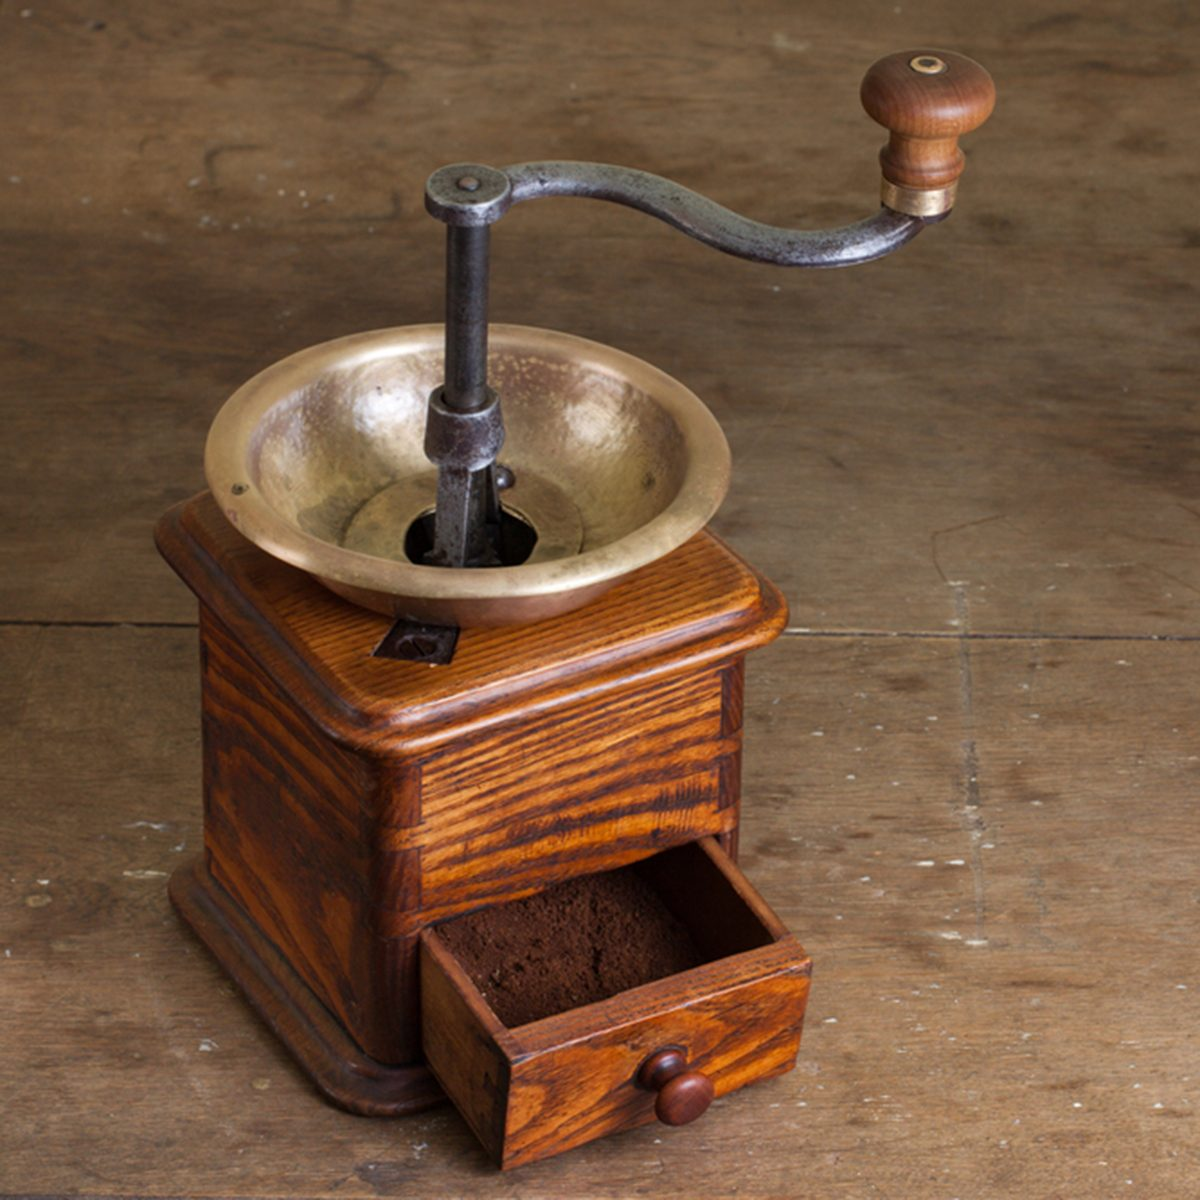 Vintage coffee grinder on old wooden table. Antique, XIX century; Shutterstock ID 103538423